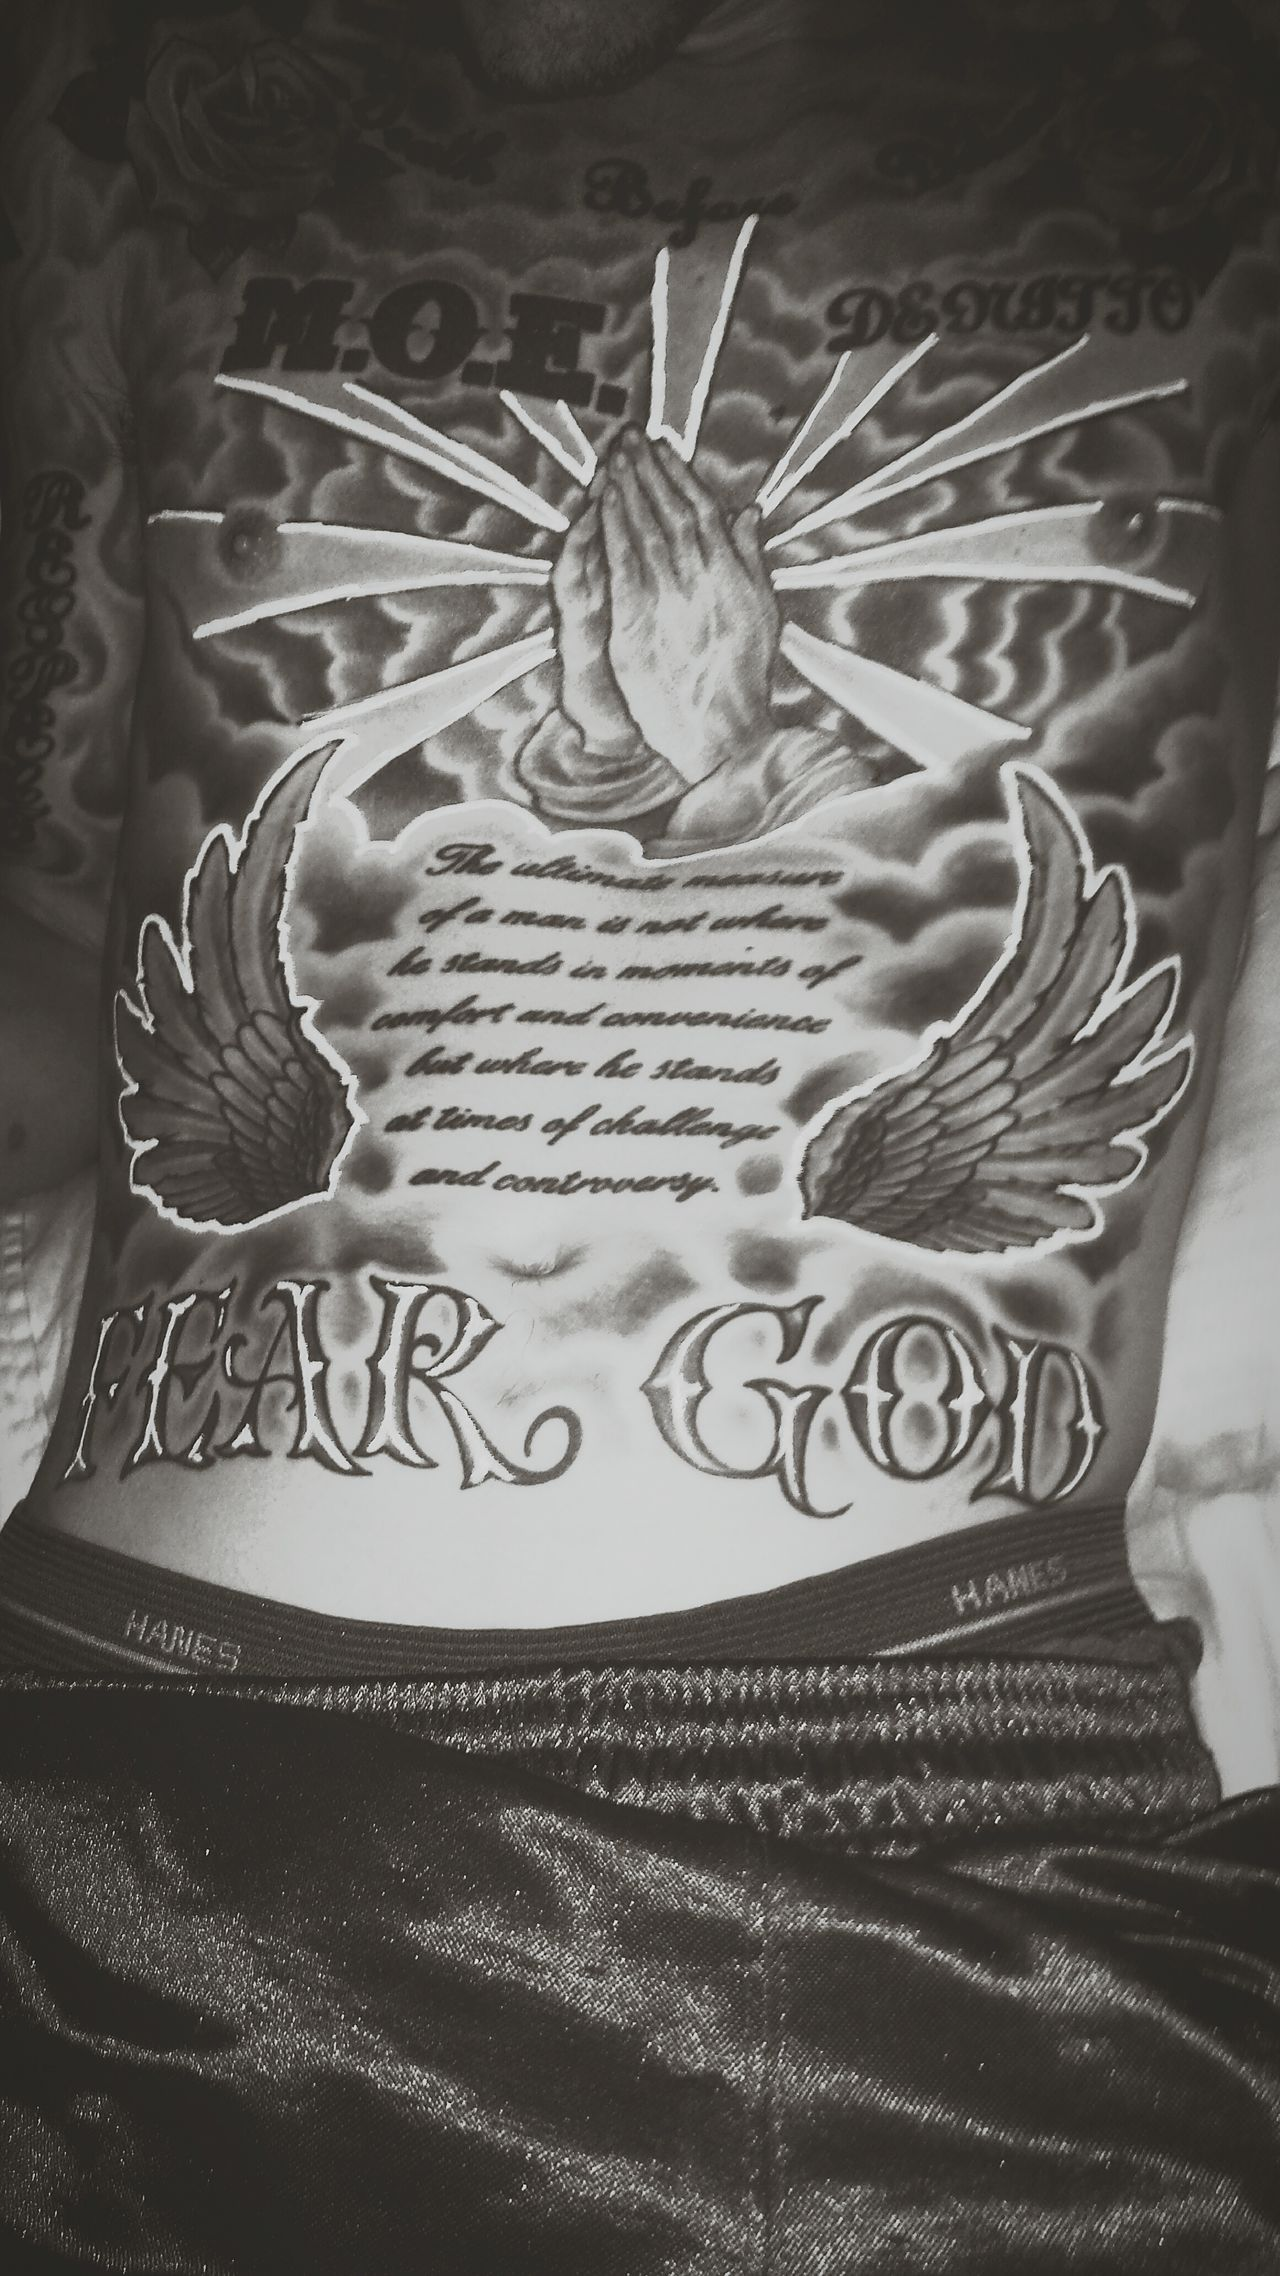 Tattooedmen Tatted Blackandwhitephotography Modernartwork Inked Up Inkaddict Beauty Redefined Permanently Embedded  Religion And Beliefs Angelwings  God Blessed  Heavenly Sky Prayinghands FaithInGod Inspirational Spiritual Journey Quotesaboutlife